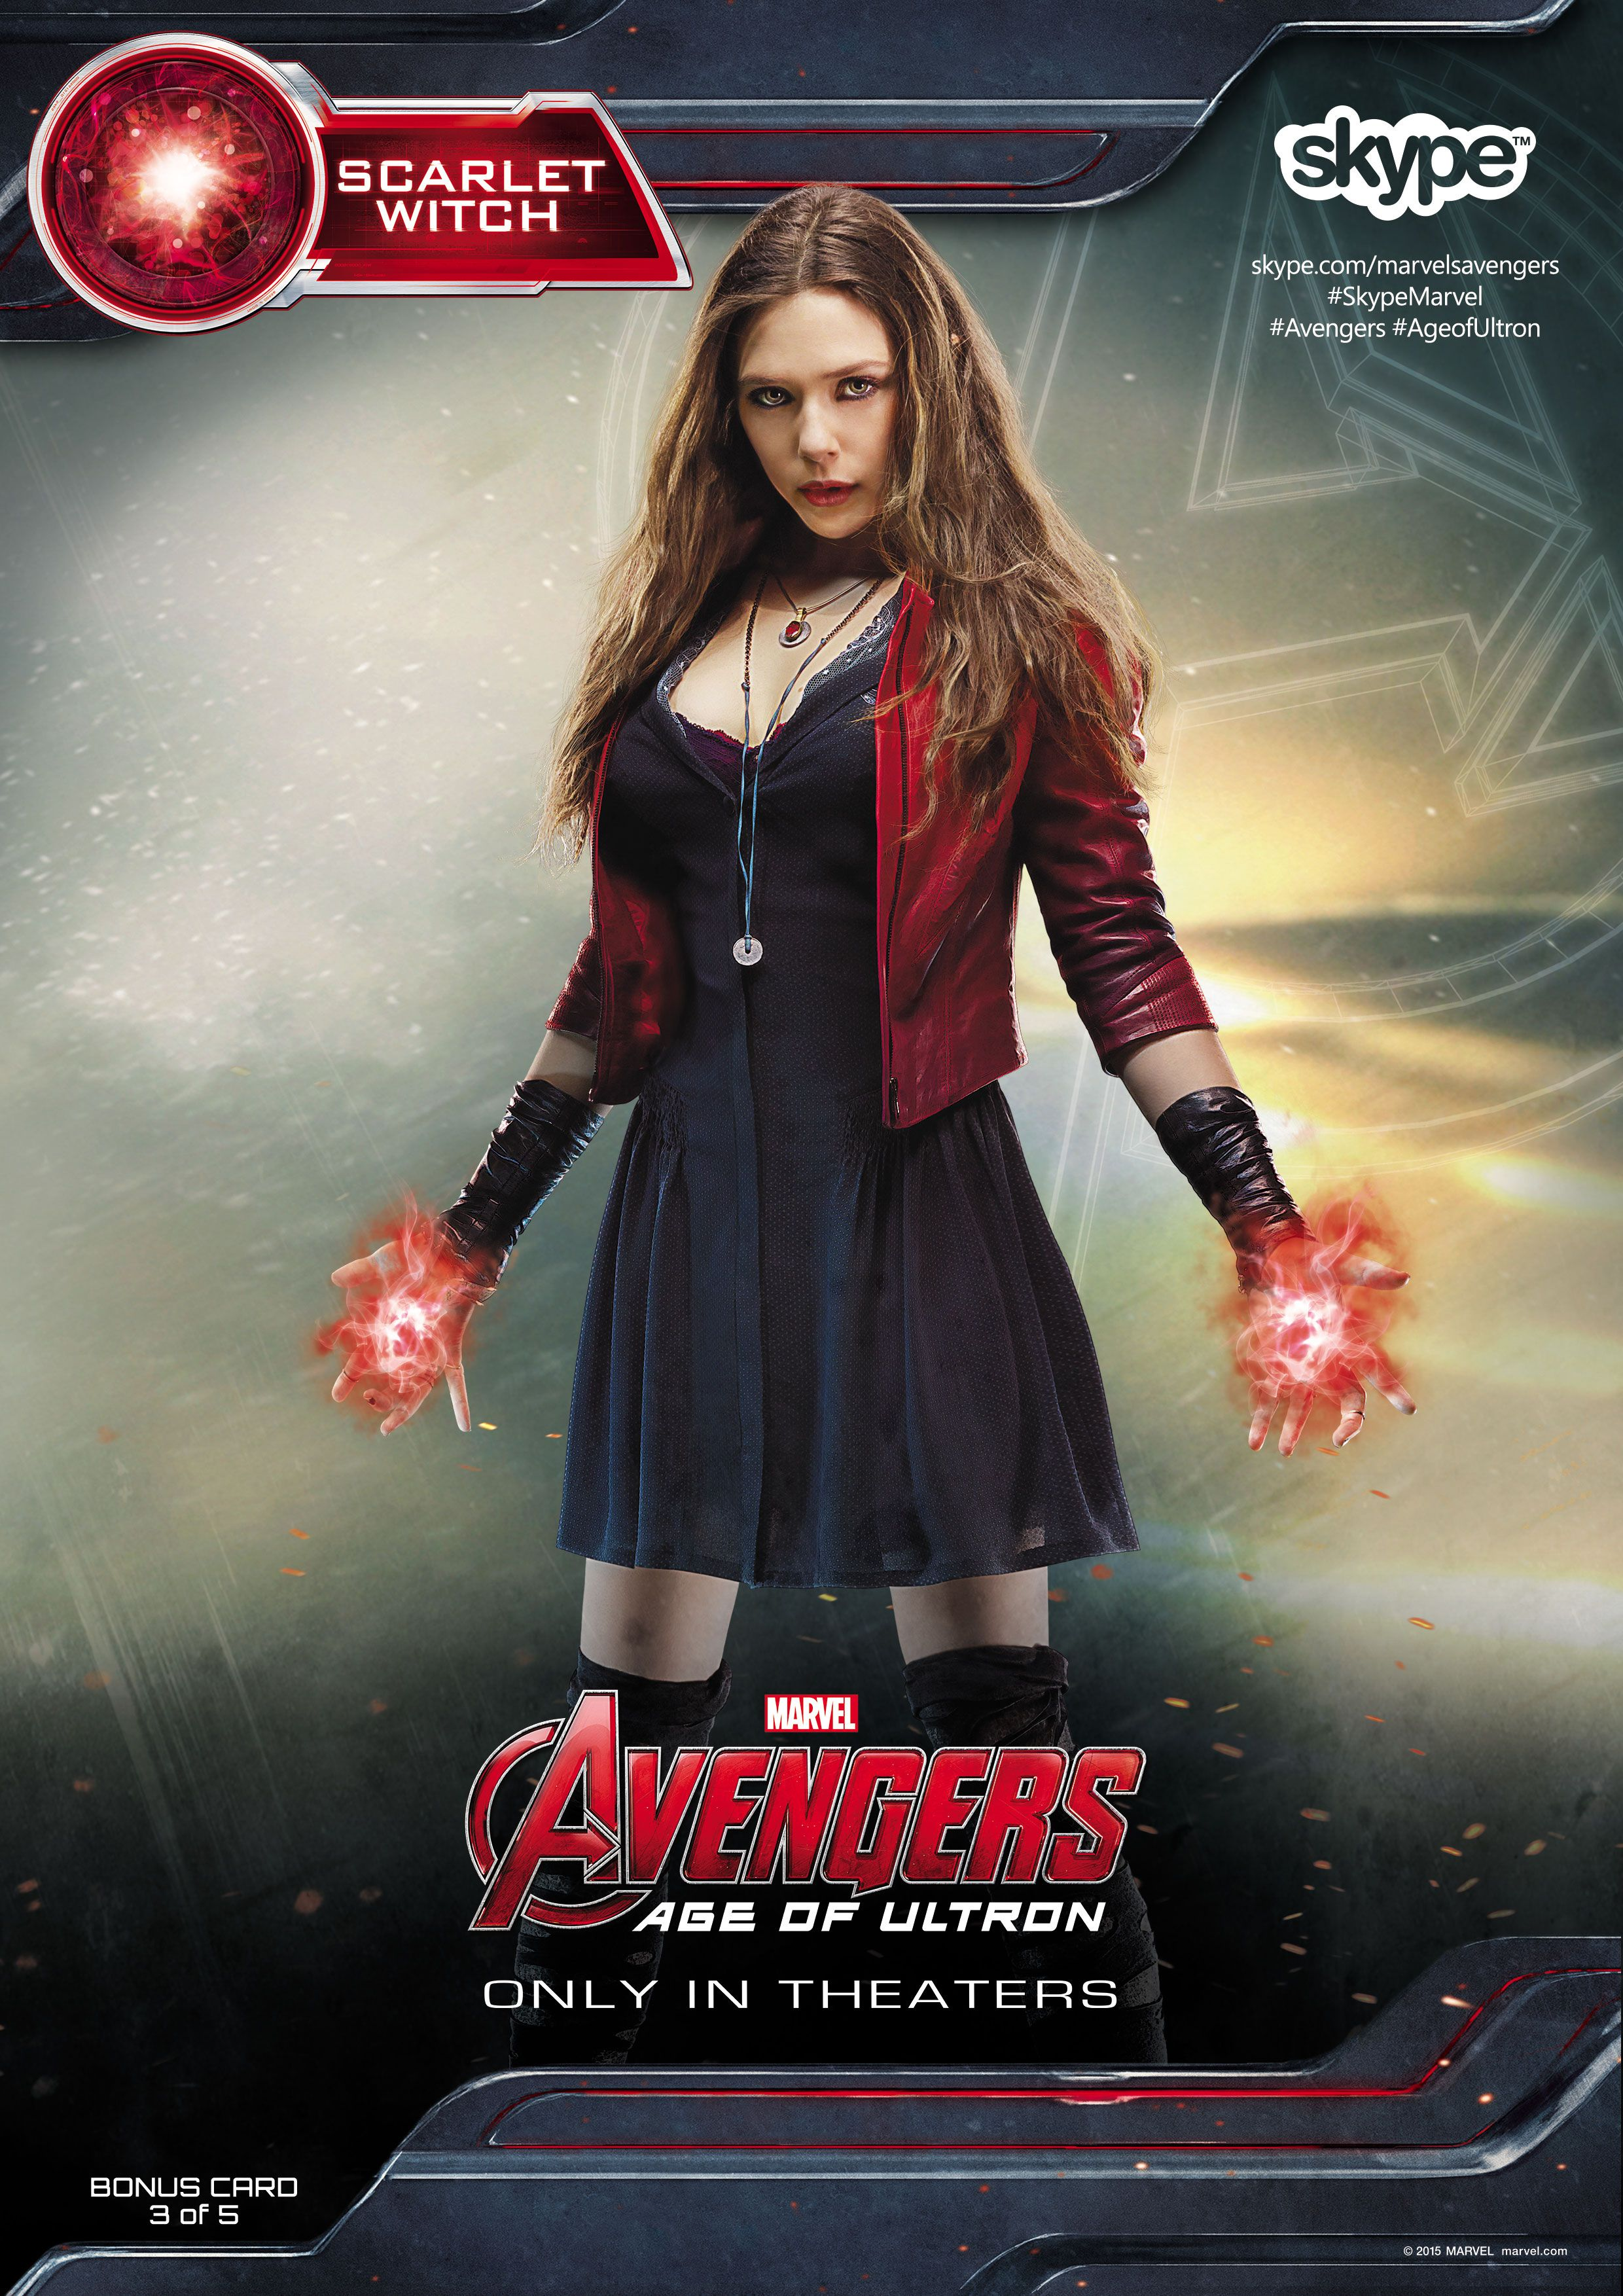 Scarlet Witch costume CW | Maximoff | Pinterest | Scarlet witch ...